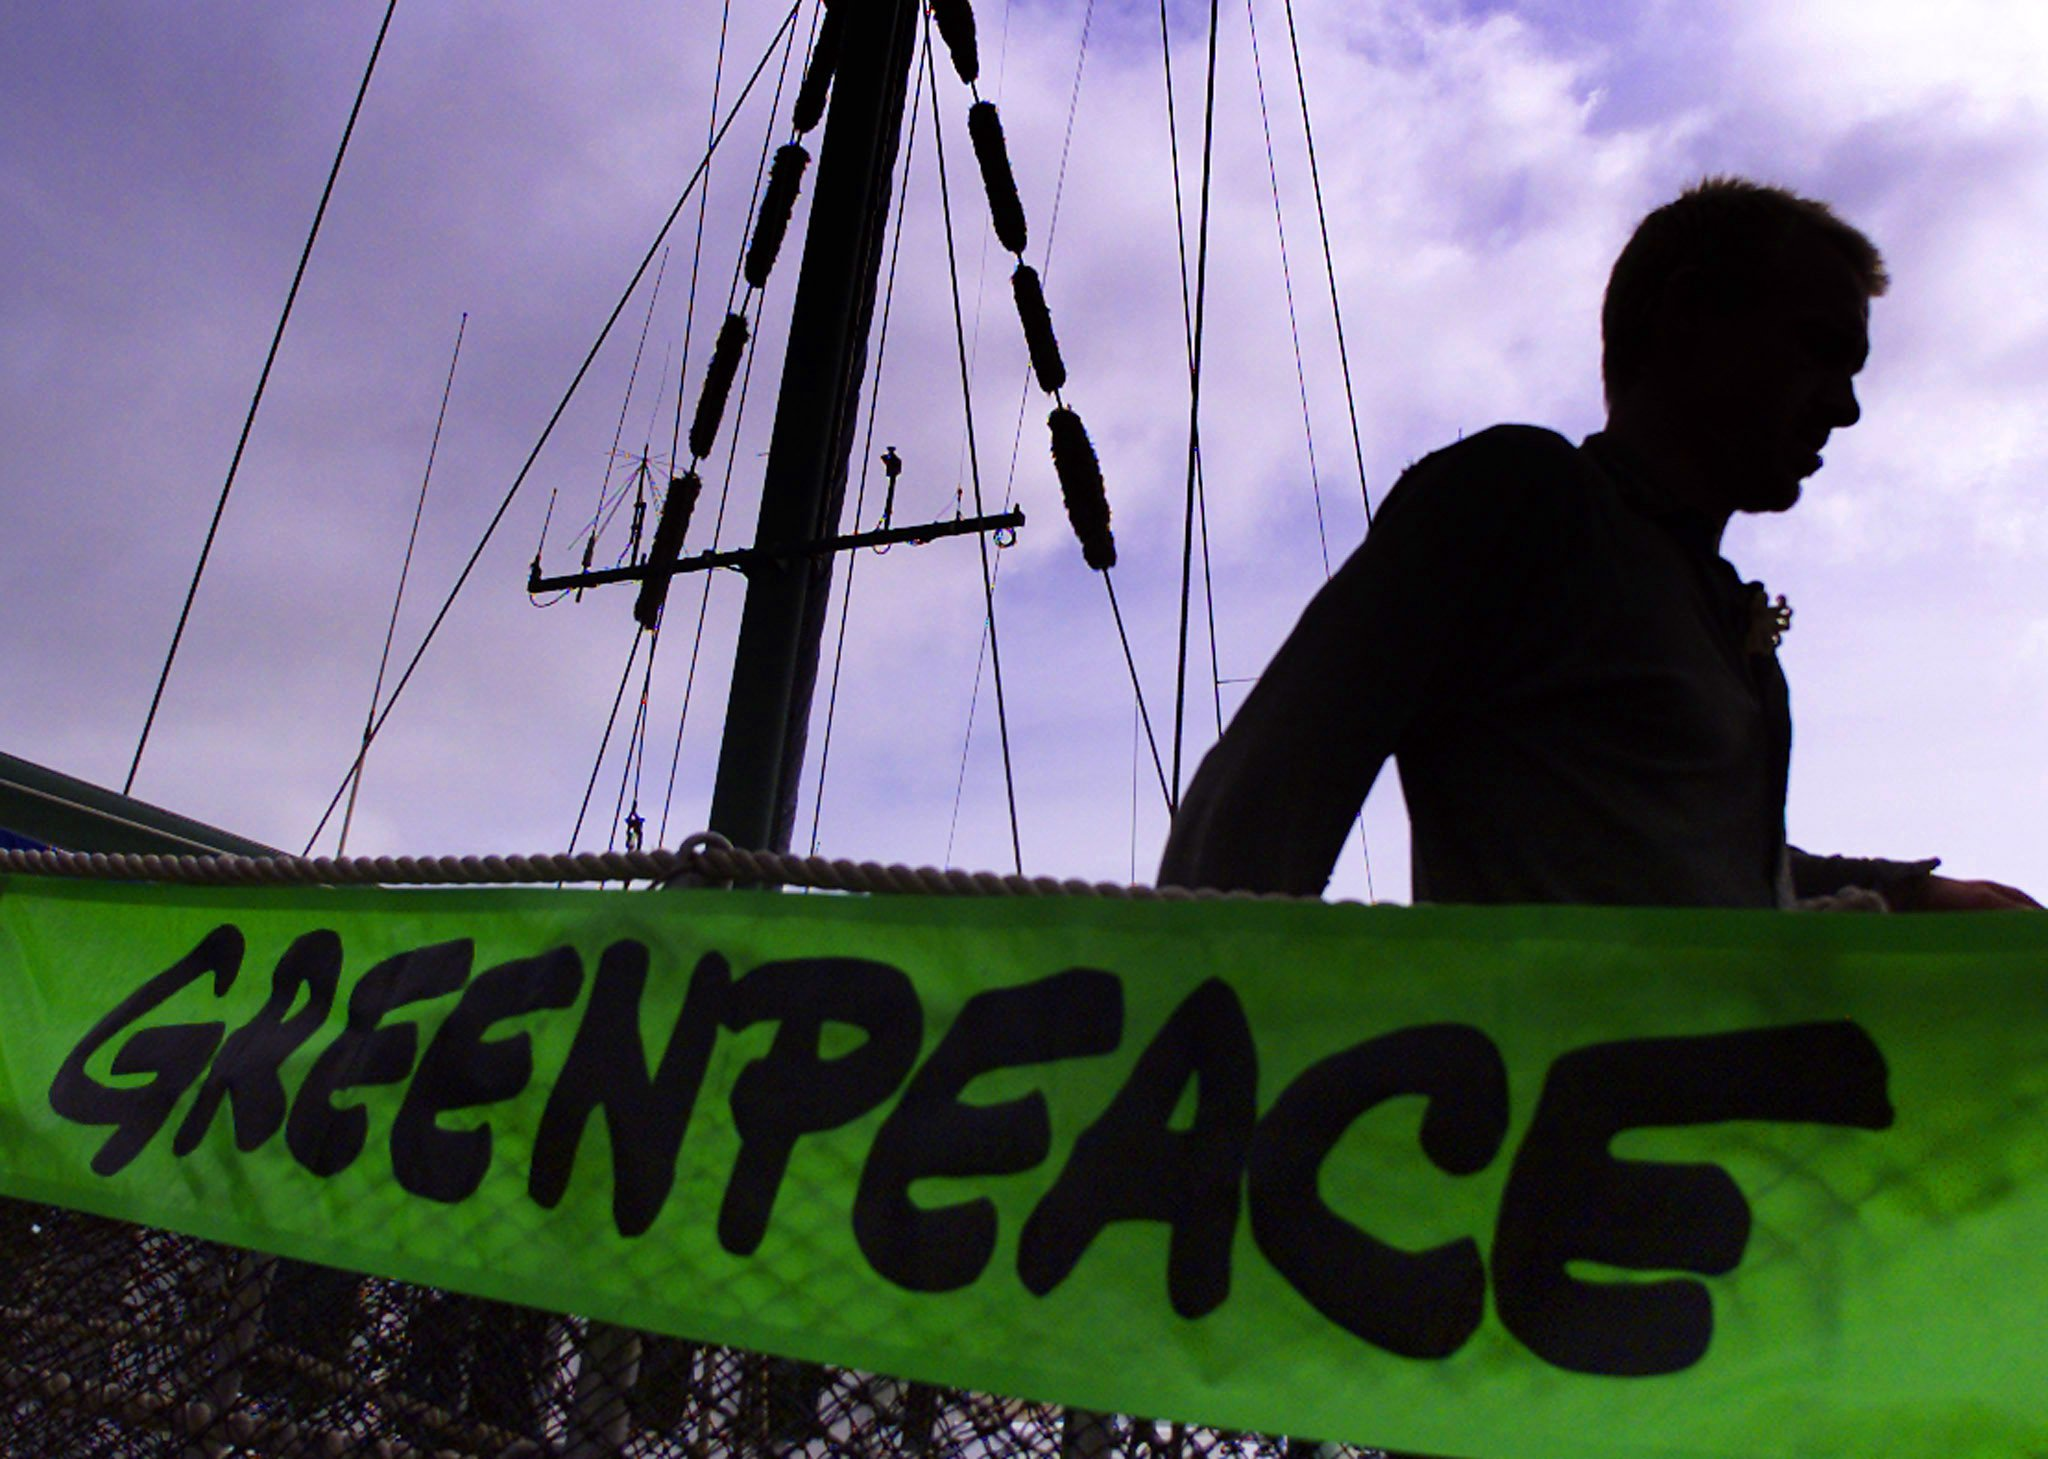 CREW MEMBER OF GREENPEACE SHIP RAINBOW WARRIOR WALKS PAST BANNER WHILEDOCKED IN DUBLIN.